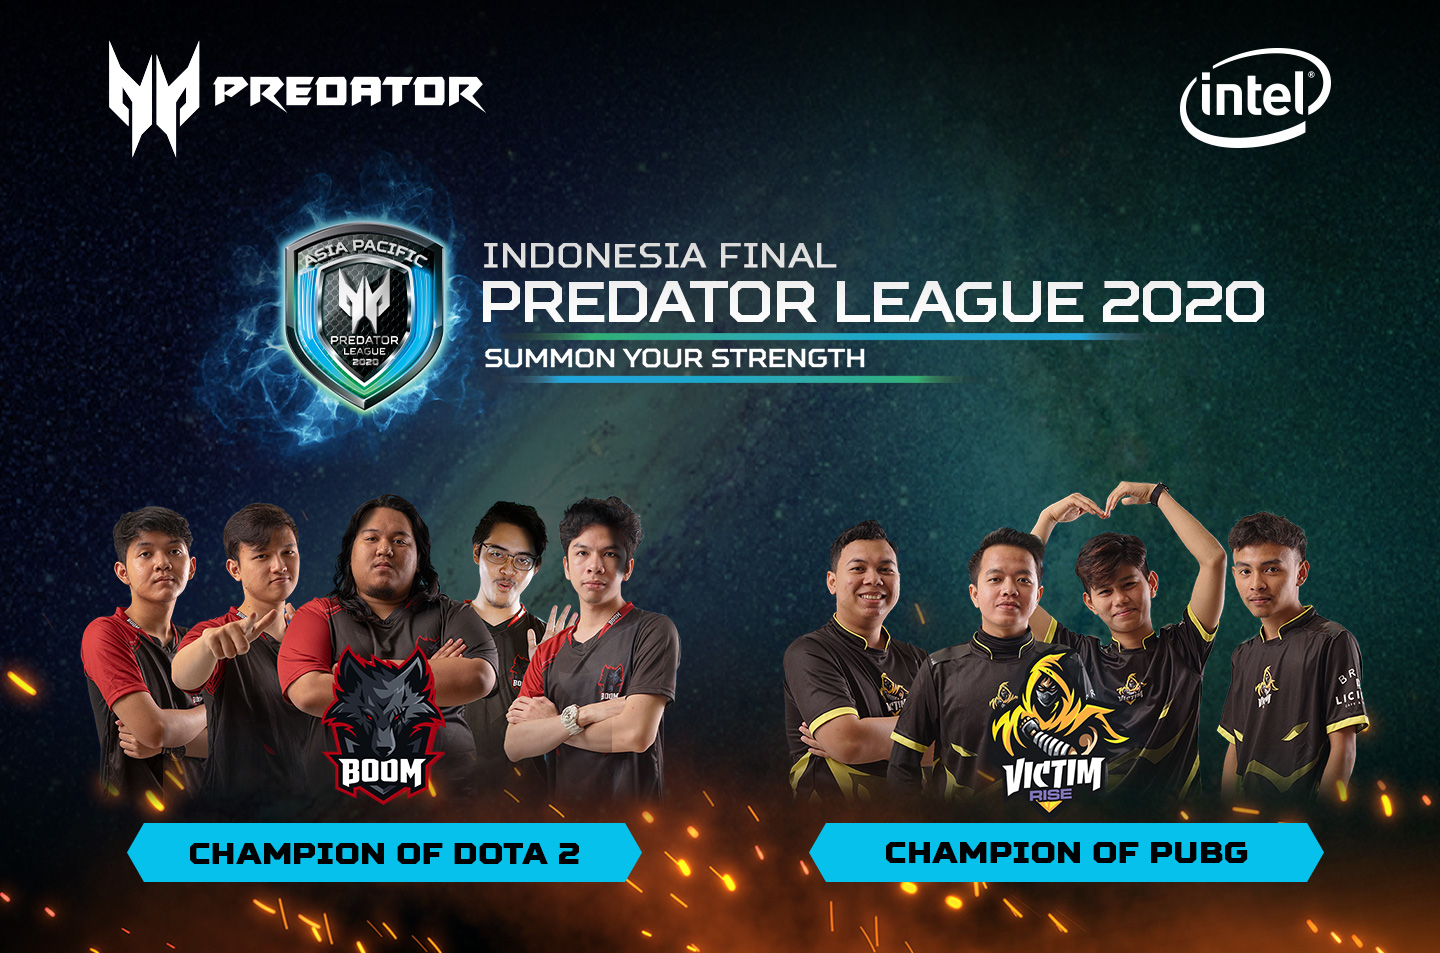 Grand-Final-Asia-Pacific-Predator-League-2020